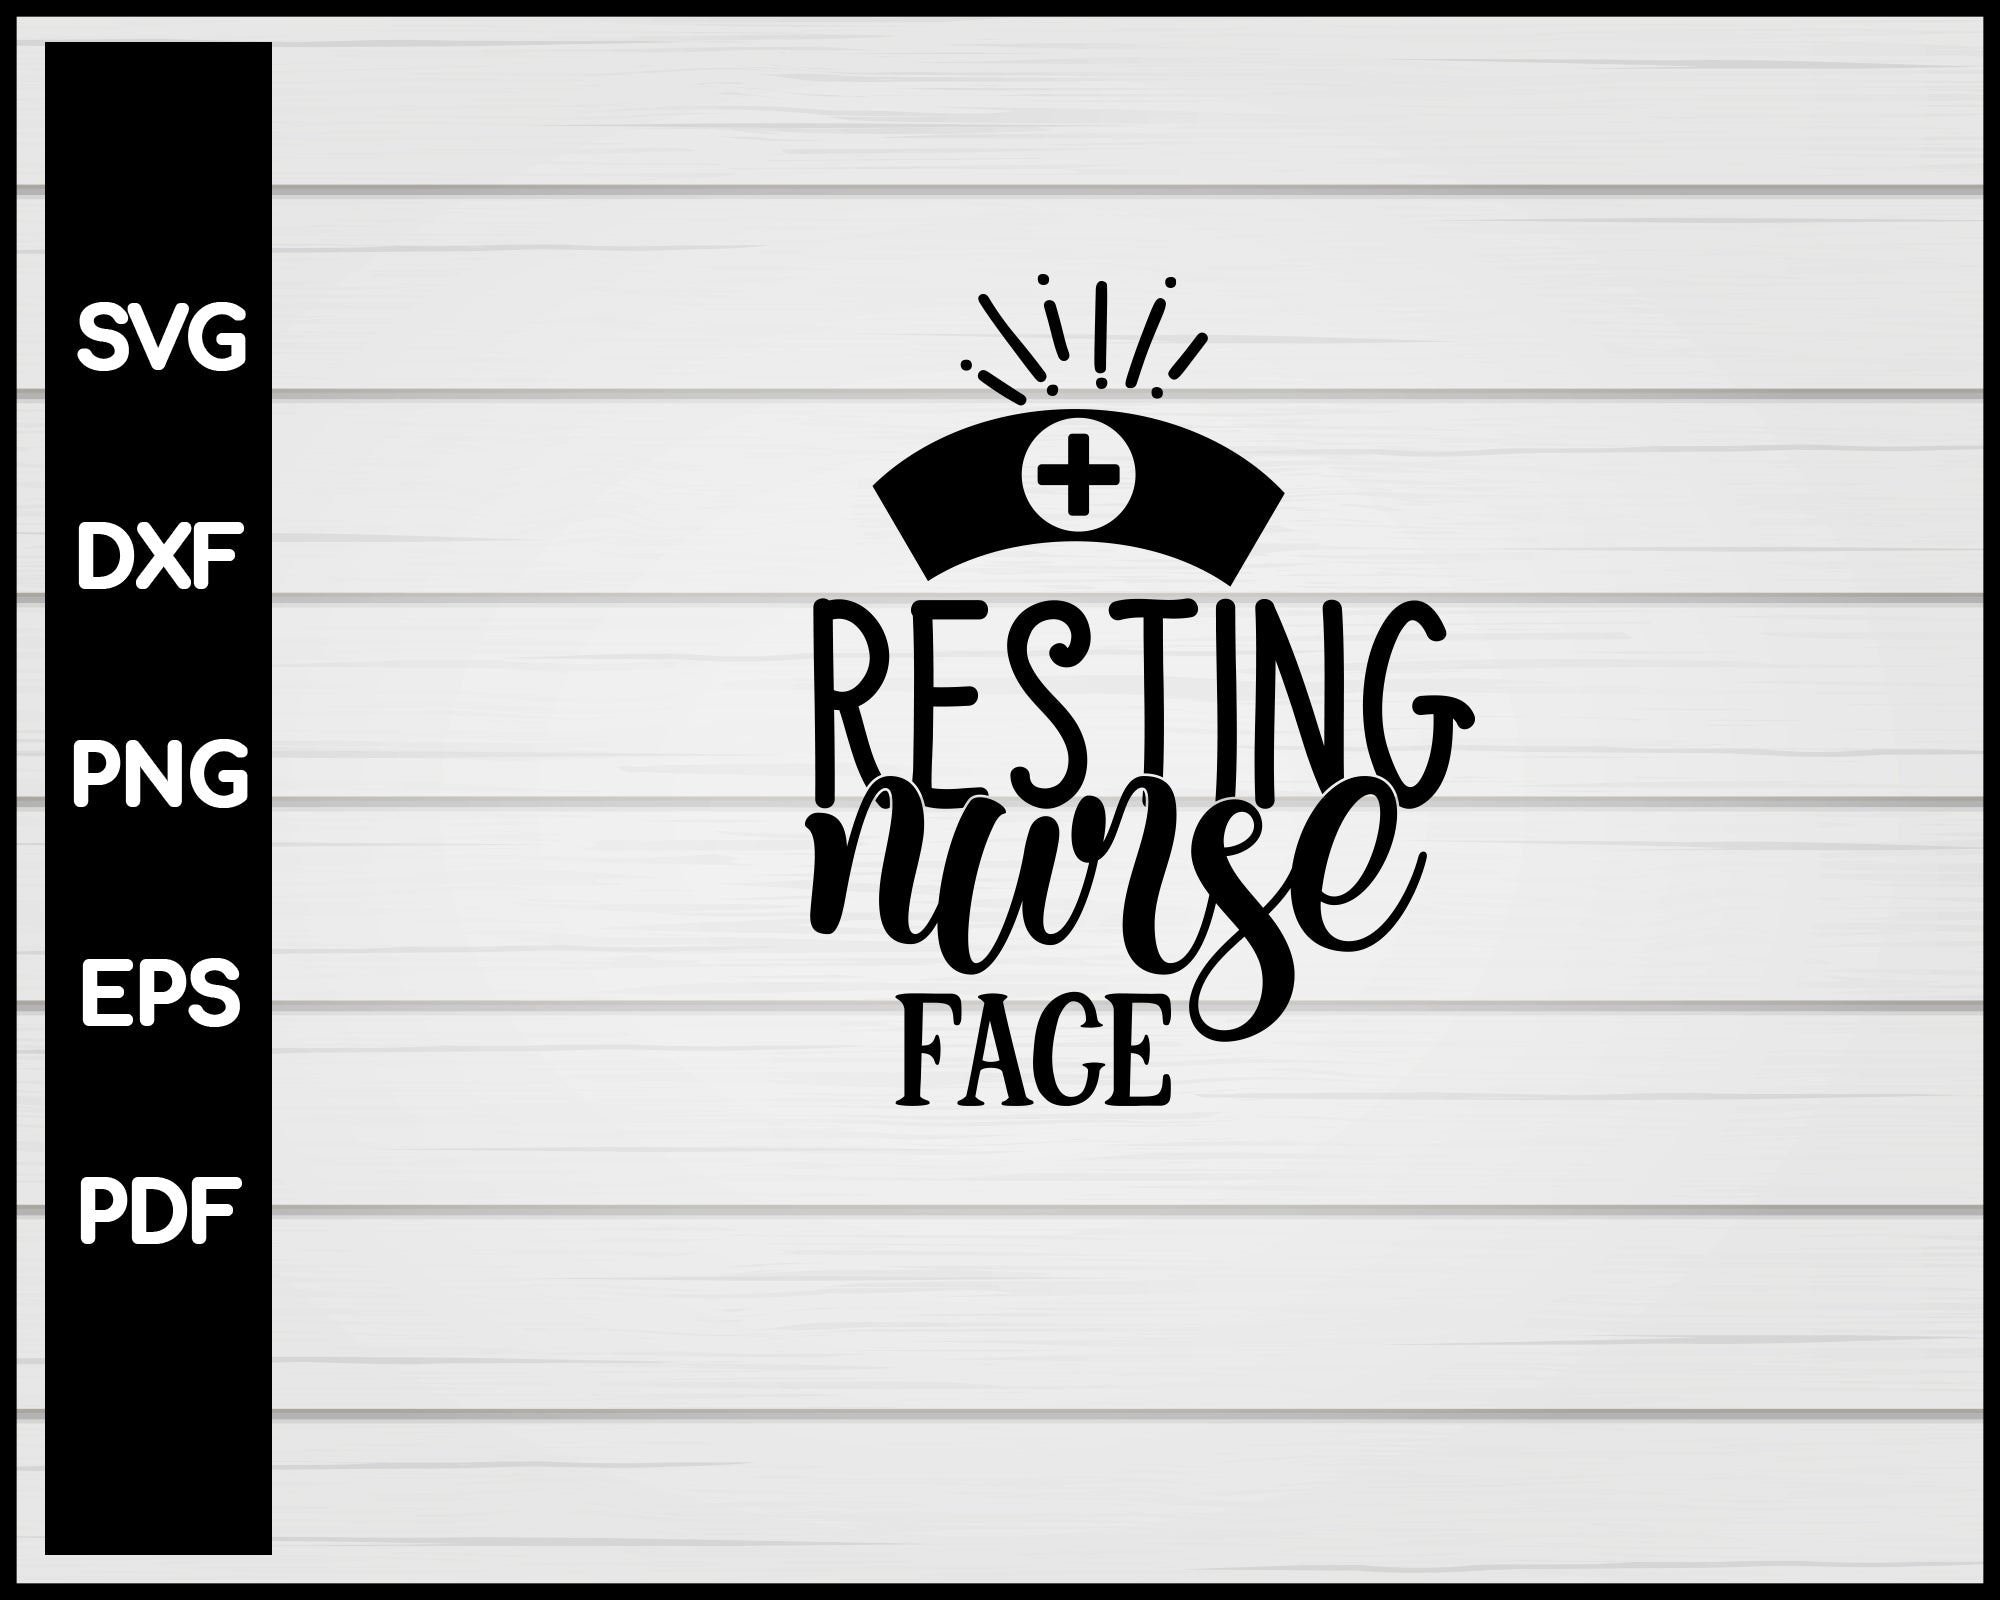 Resting Nurse Face svg Cut File For Cricut Silhouette eps png dxf Printable Files